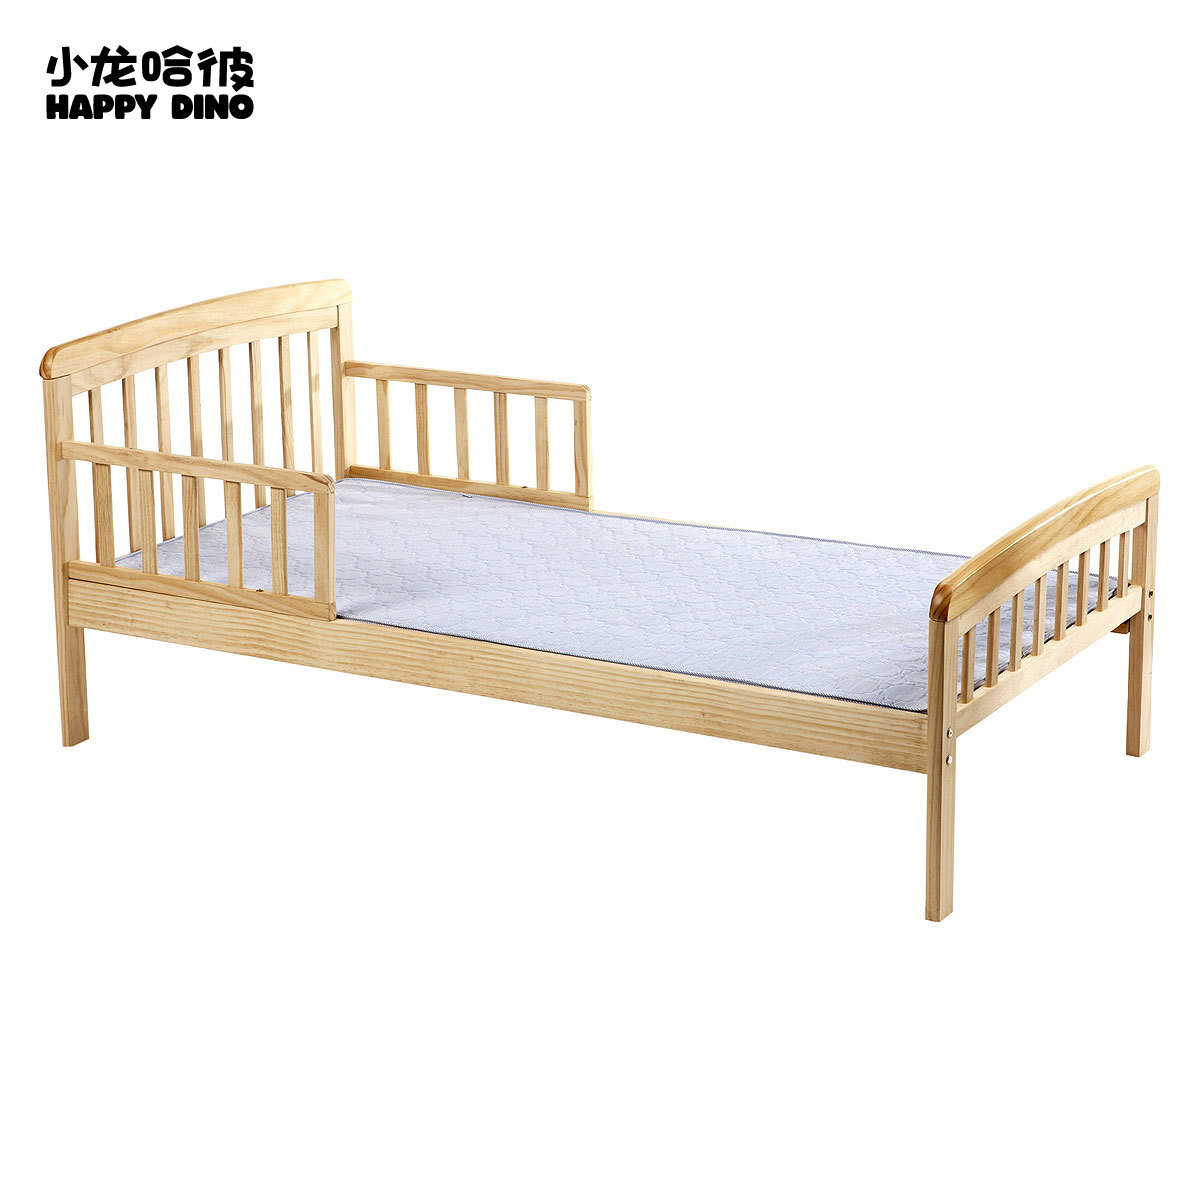 Dragons ha he crib juvenile LML360 environmental protection without paint wood crib baby bed children bed wooden bed children